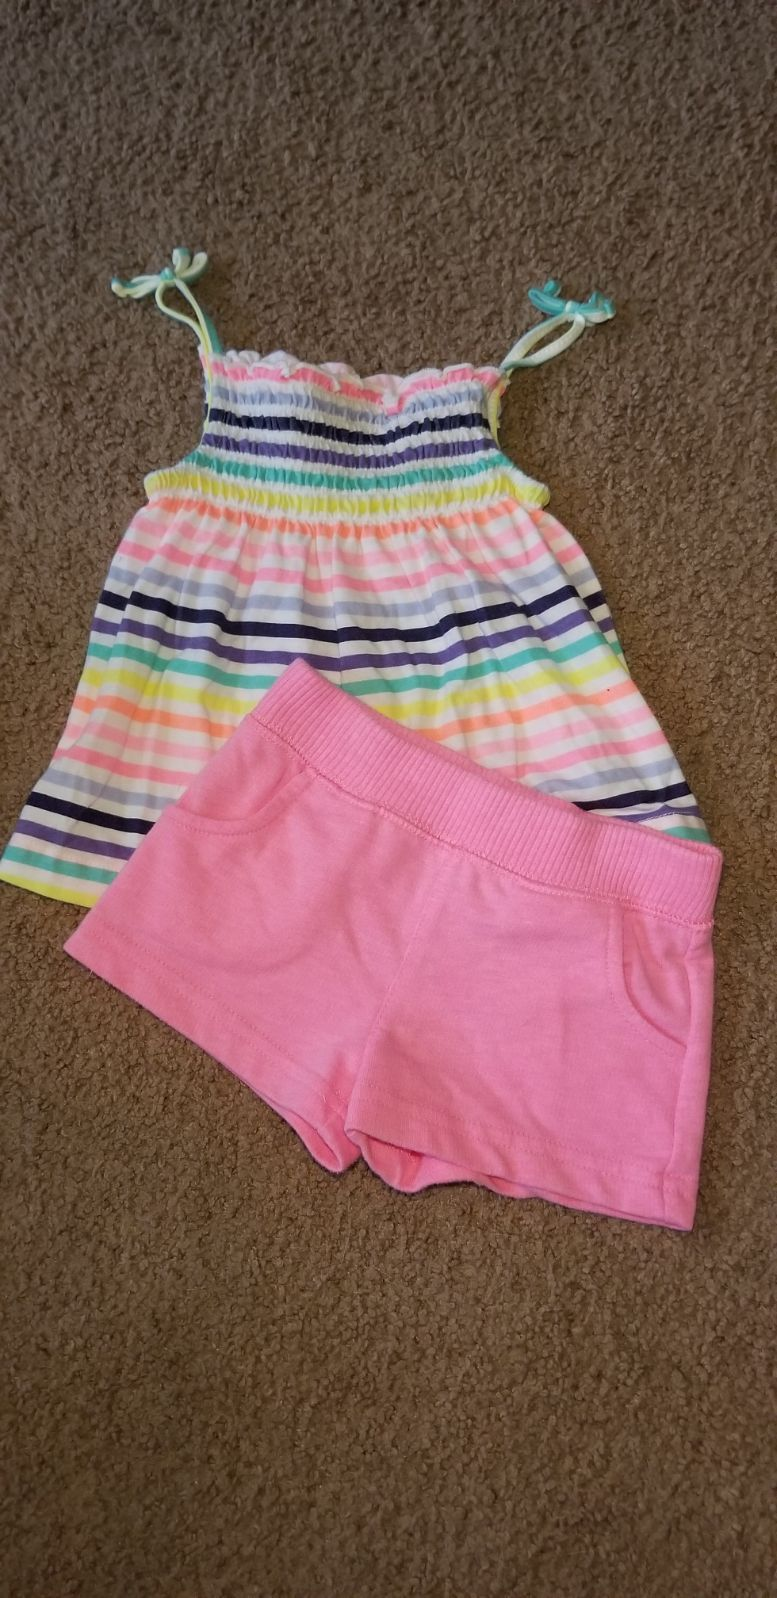 365ab32de0fa New!!! (Without tags). Super cute striped 2 piece Carter's baby ...